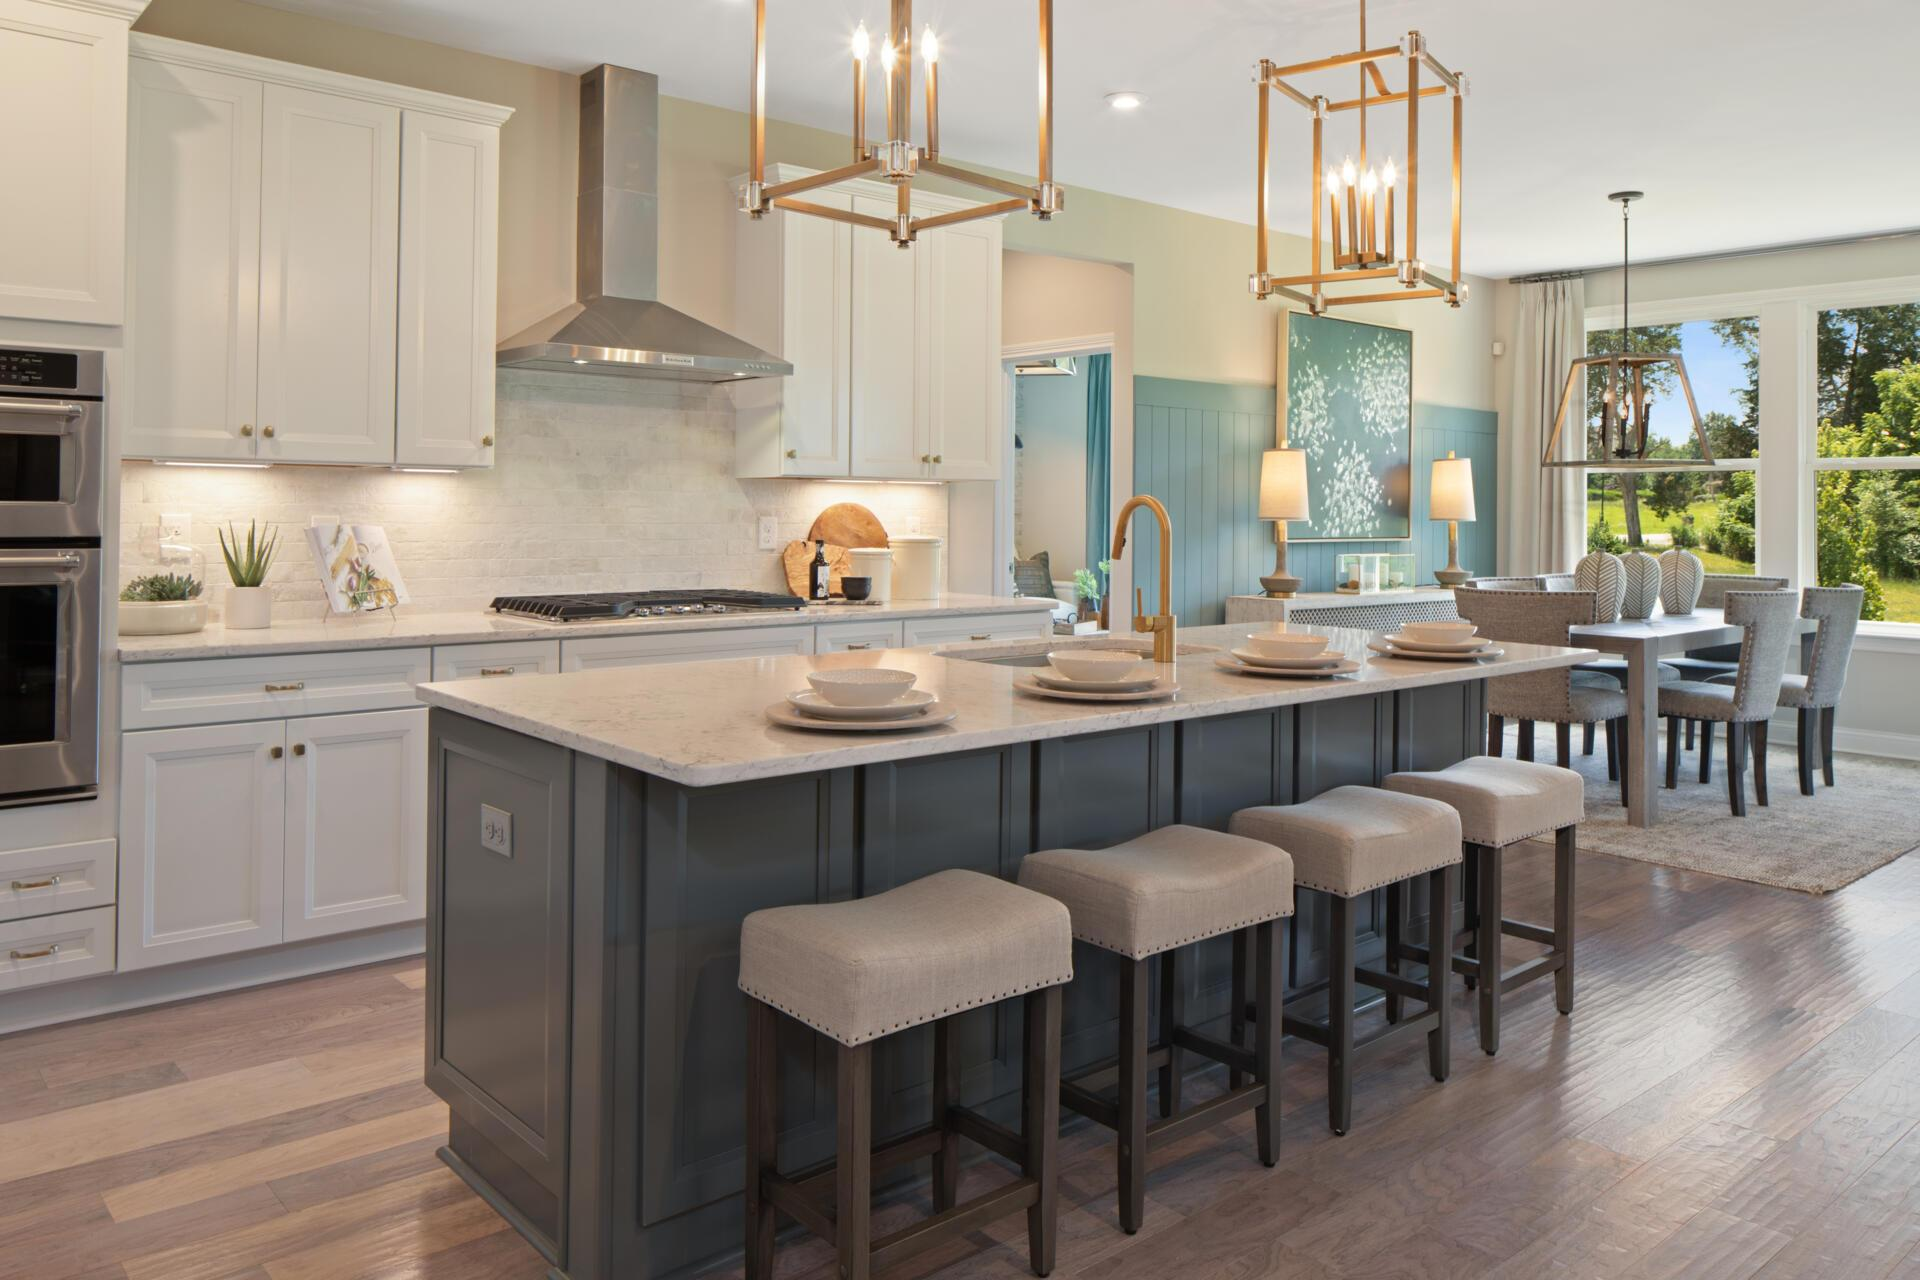 Kitchen featured in the Lyndhurst By Drees Homes in Cleveland, OH